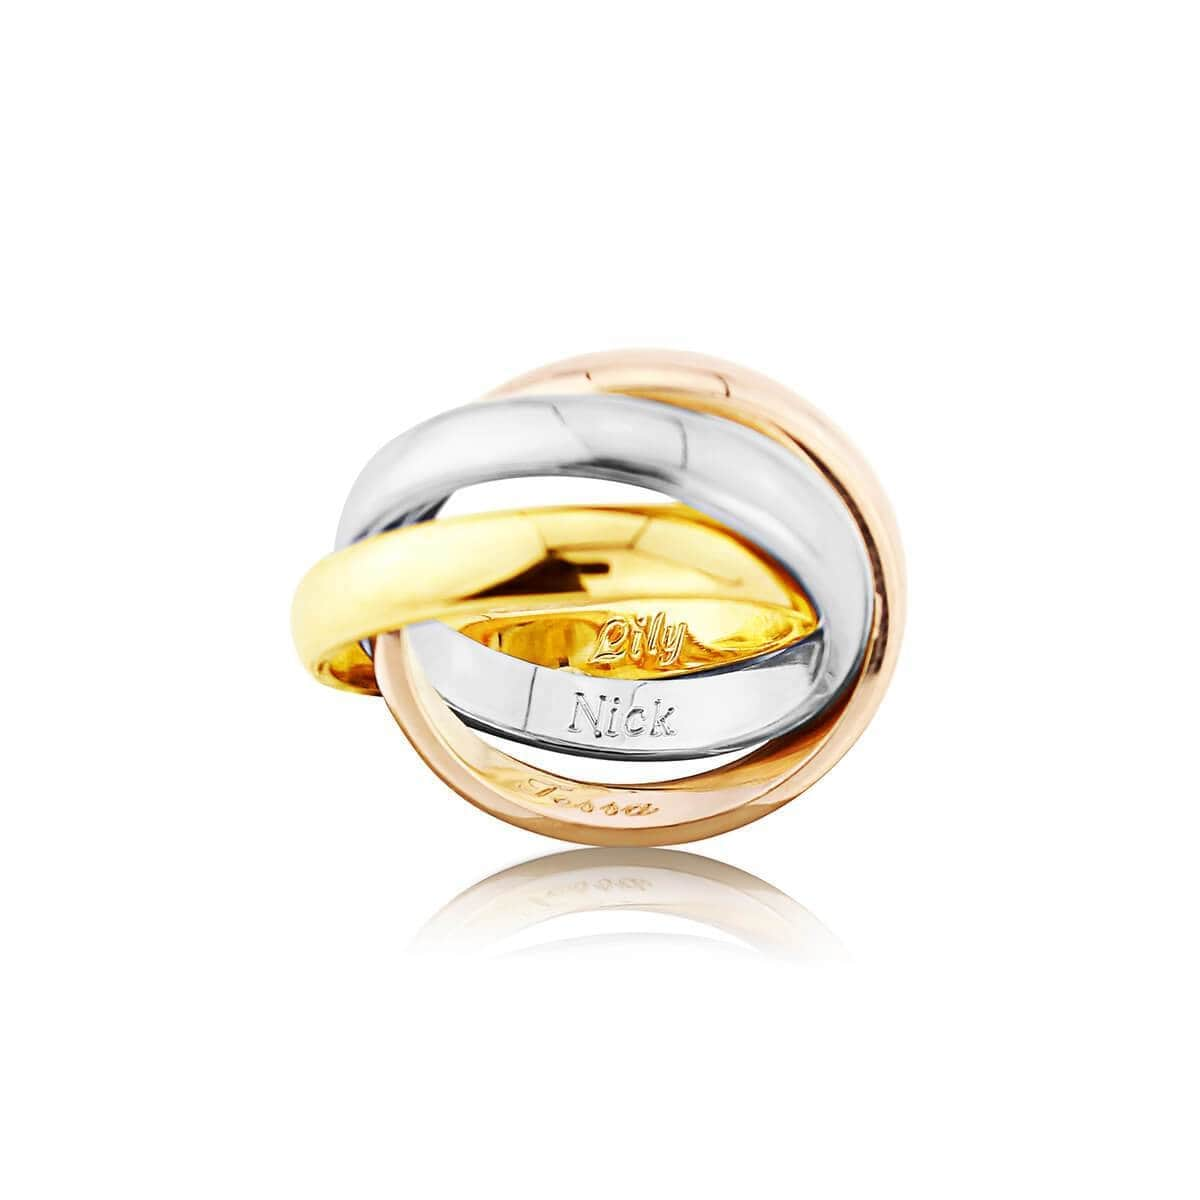 9kt Yellow, White, & Rose Gold Walton Russian Wedding Ring - 3mm